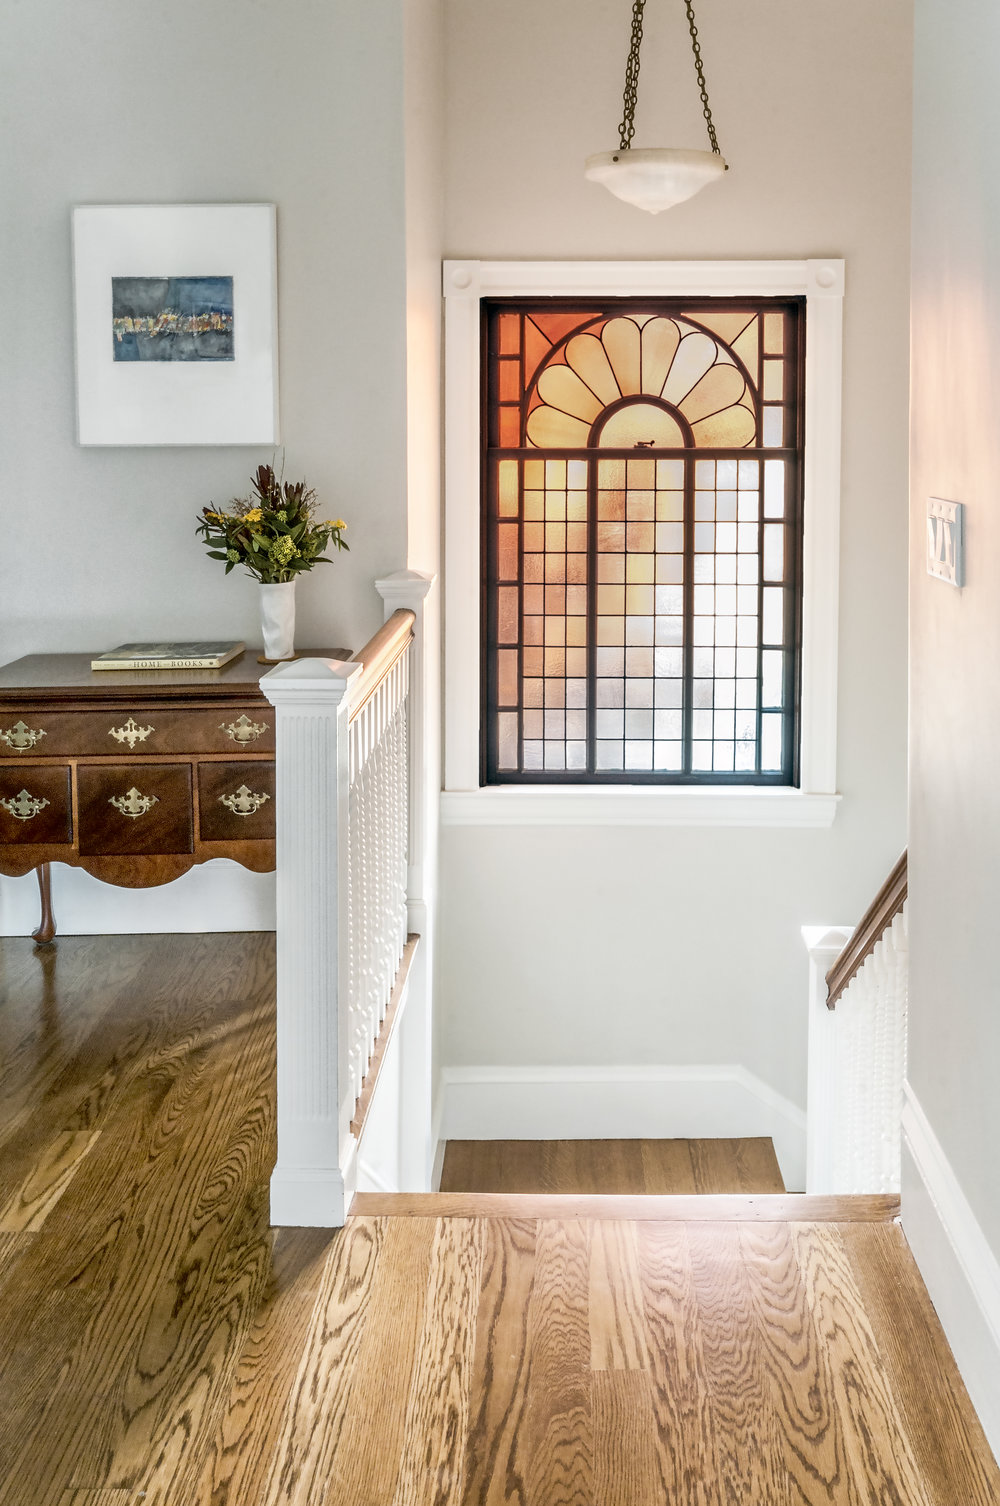 Stairway with custom leaded glass window